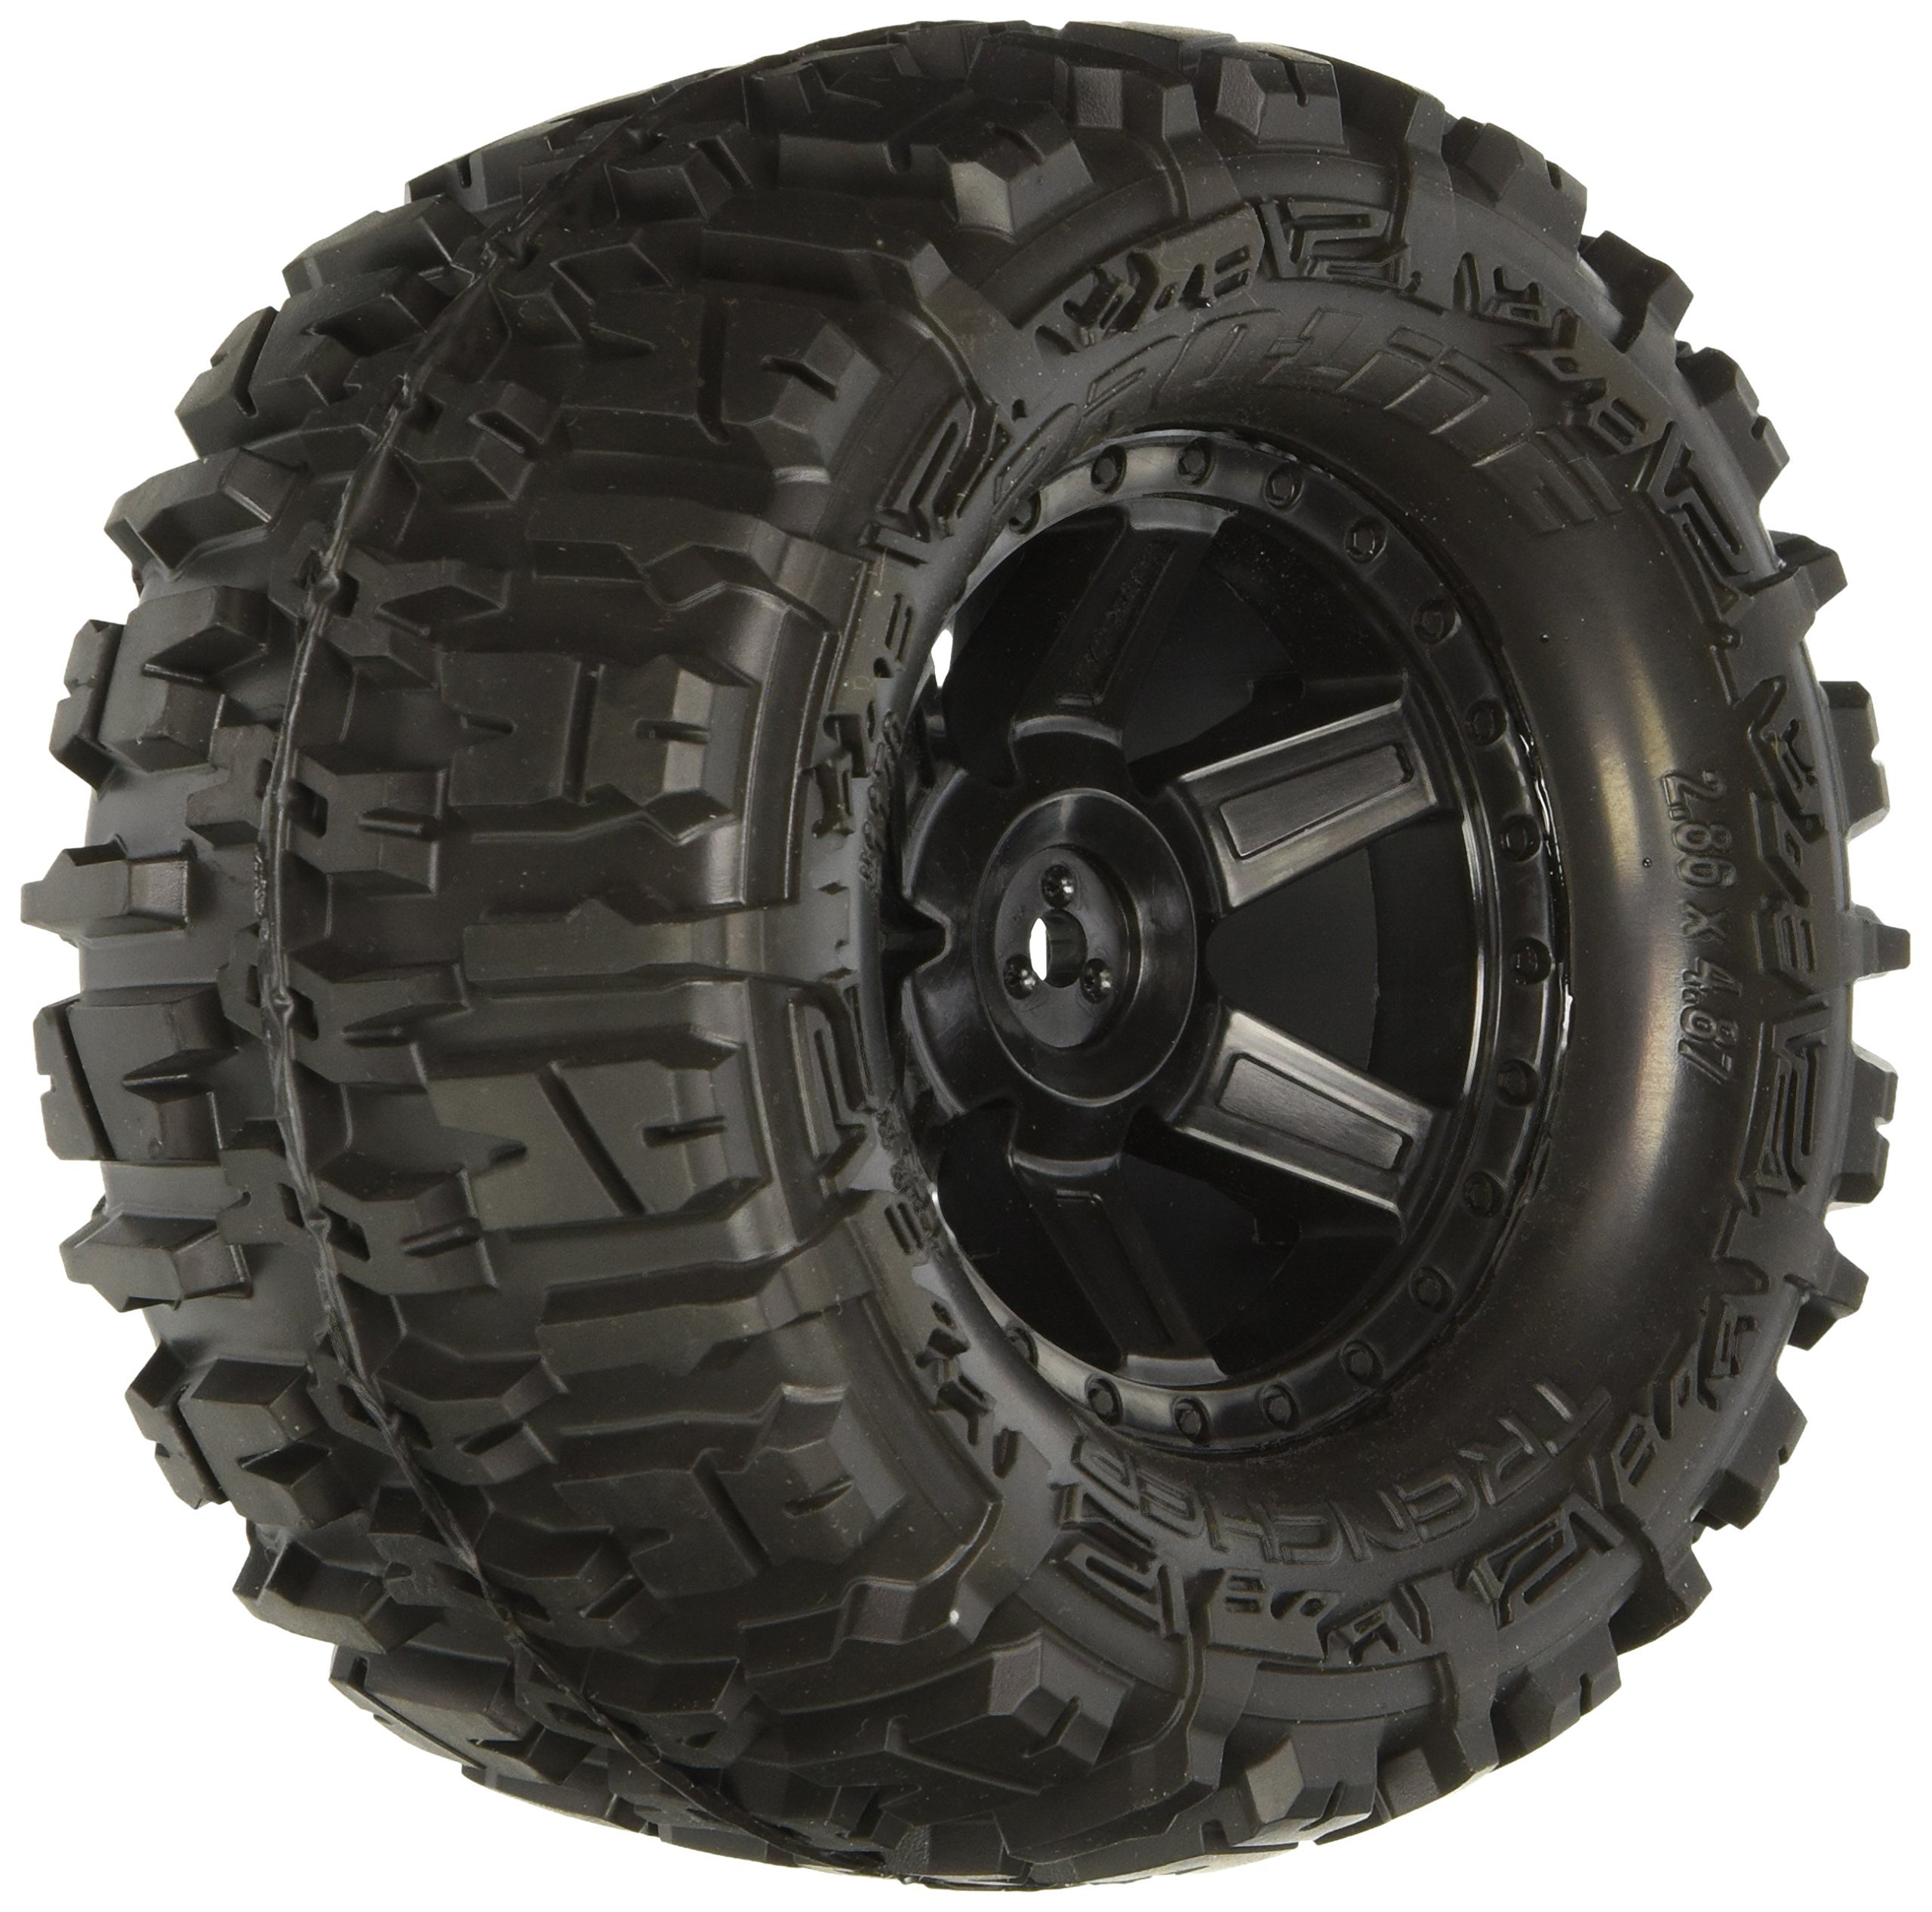 Proline 117013 Trencher 2.8'' All Terrain Tires Mounted for Electric Stampede/Rustler, Pair